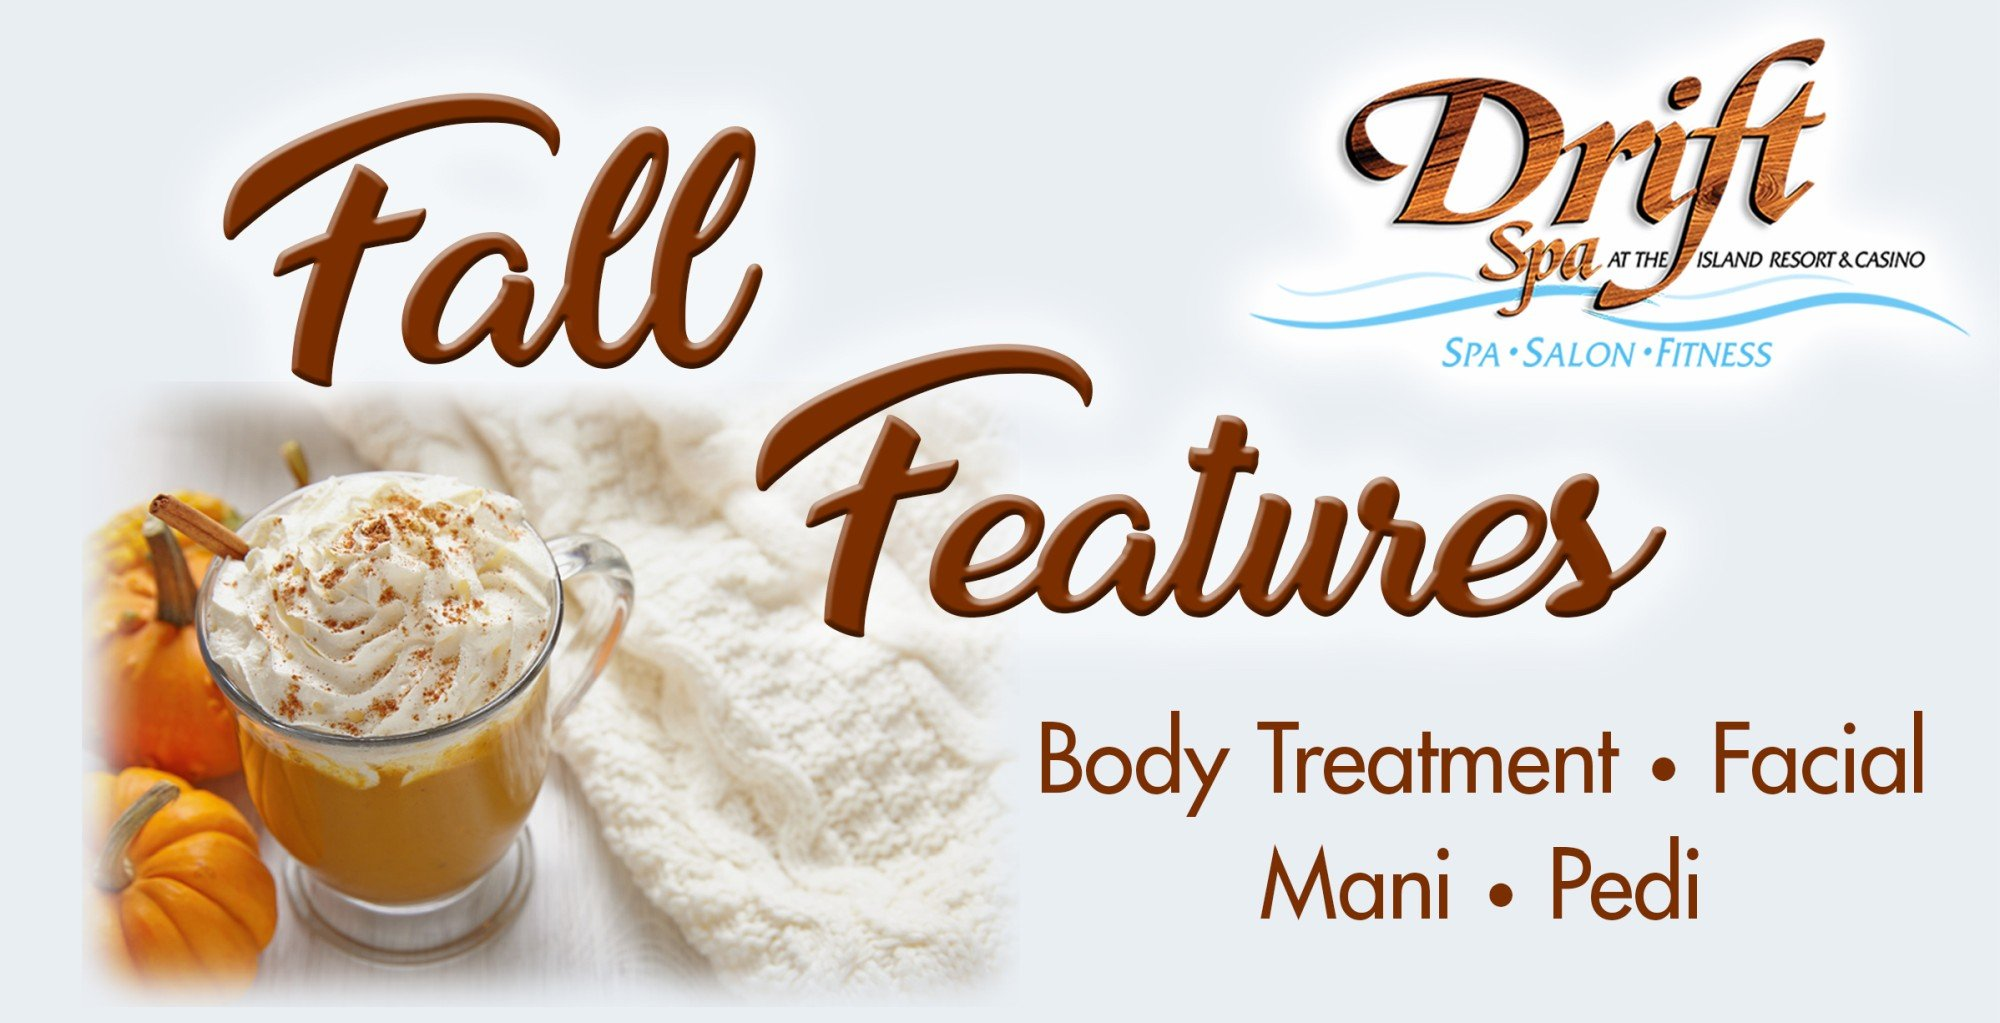 Drift Spa September Promotions